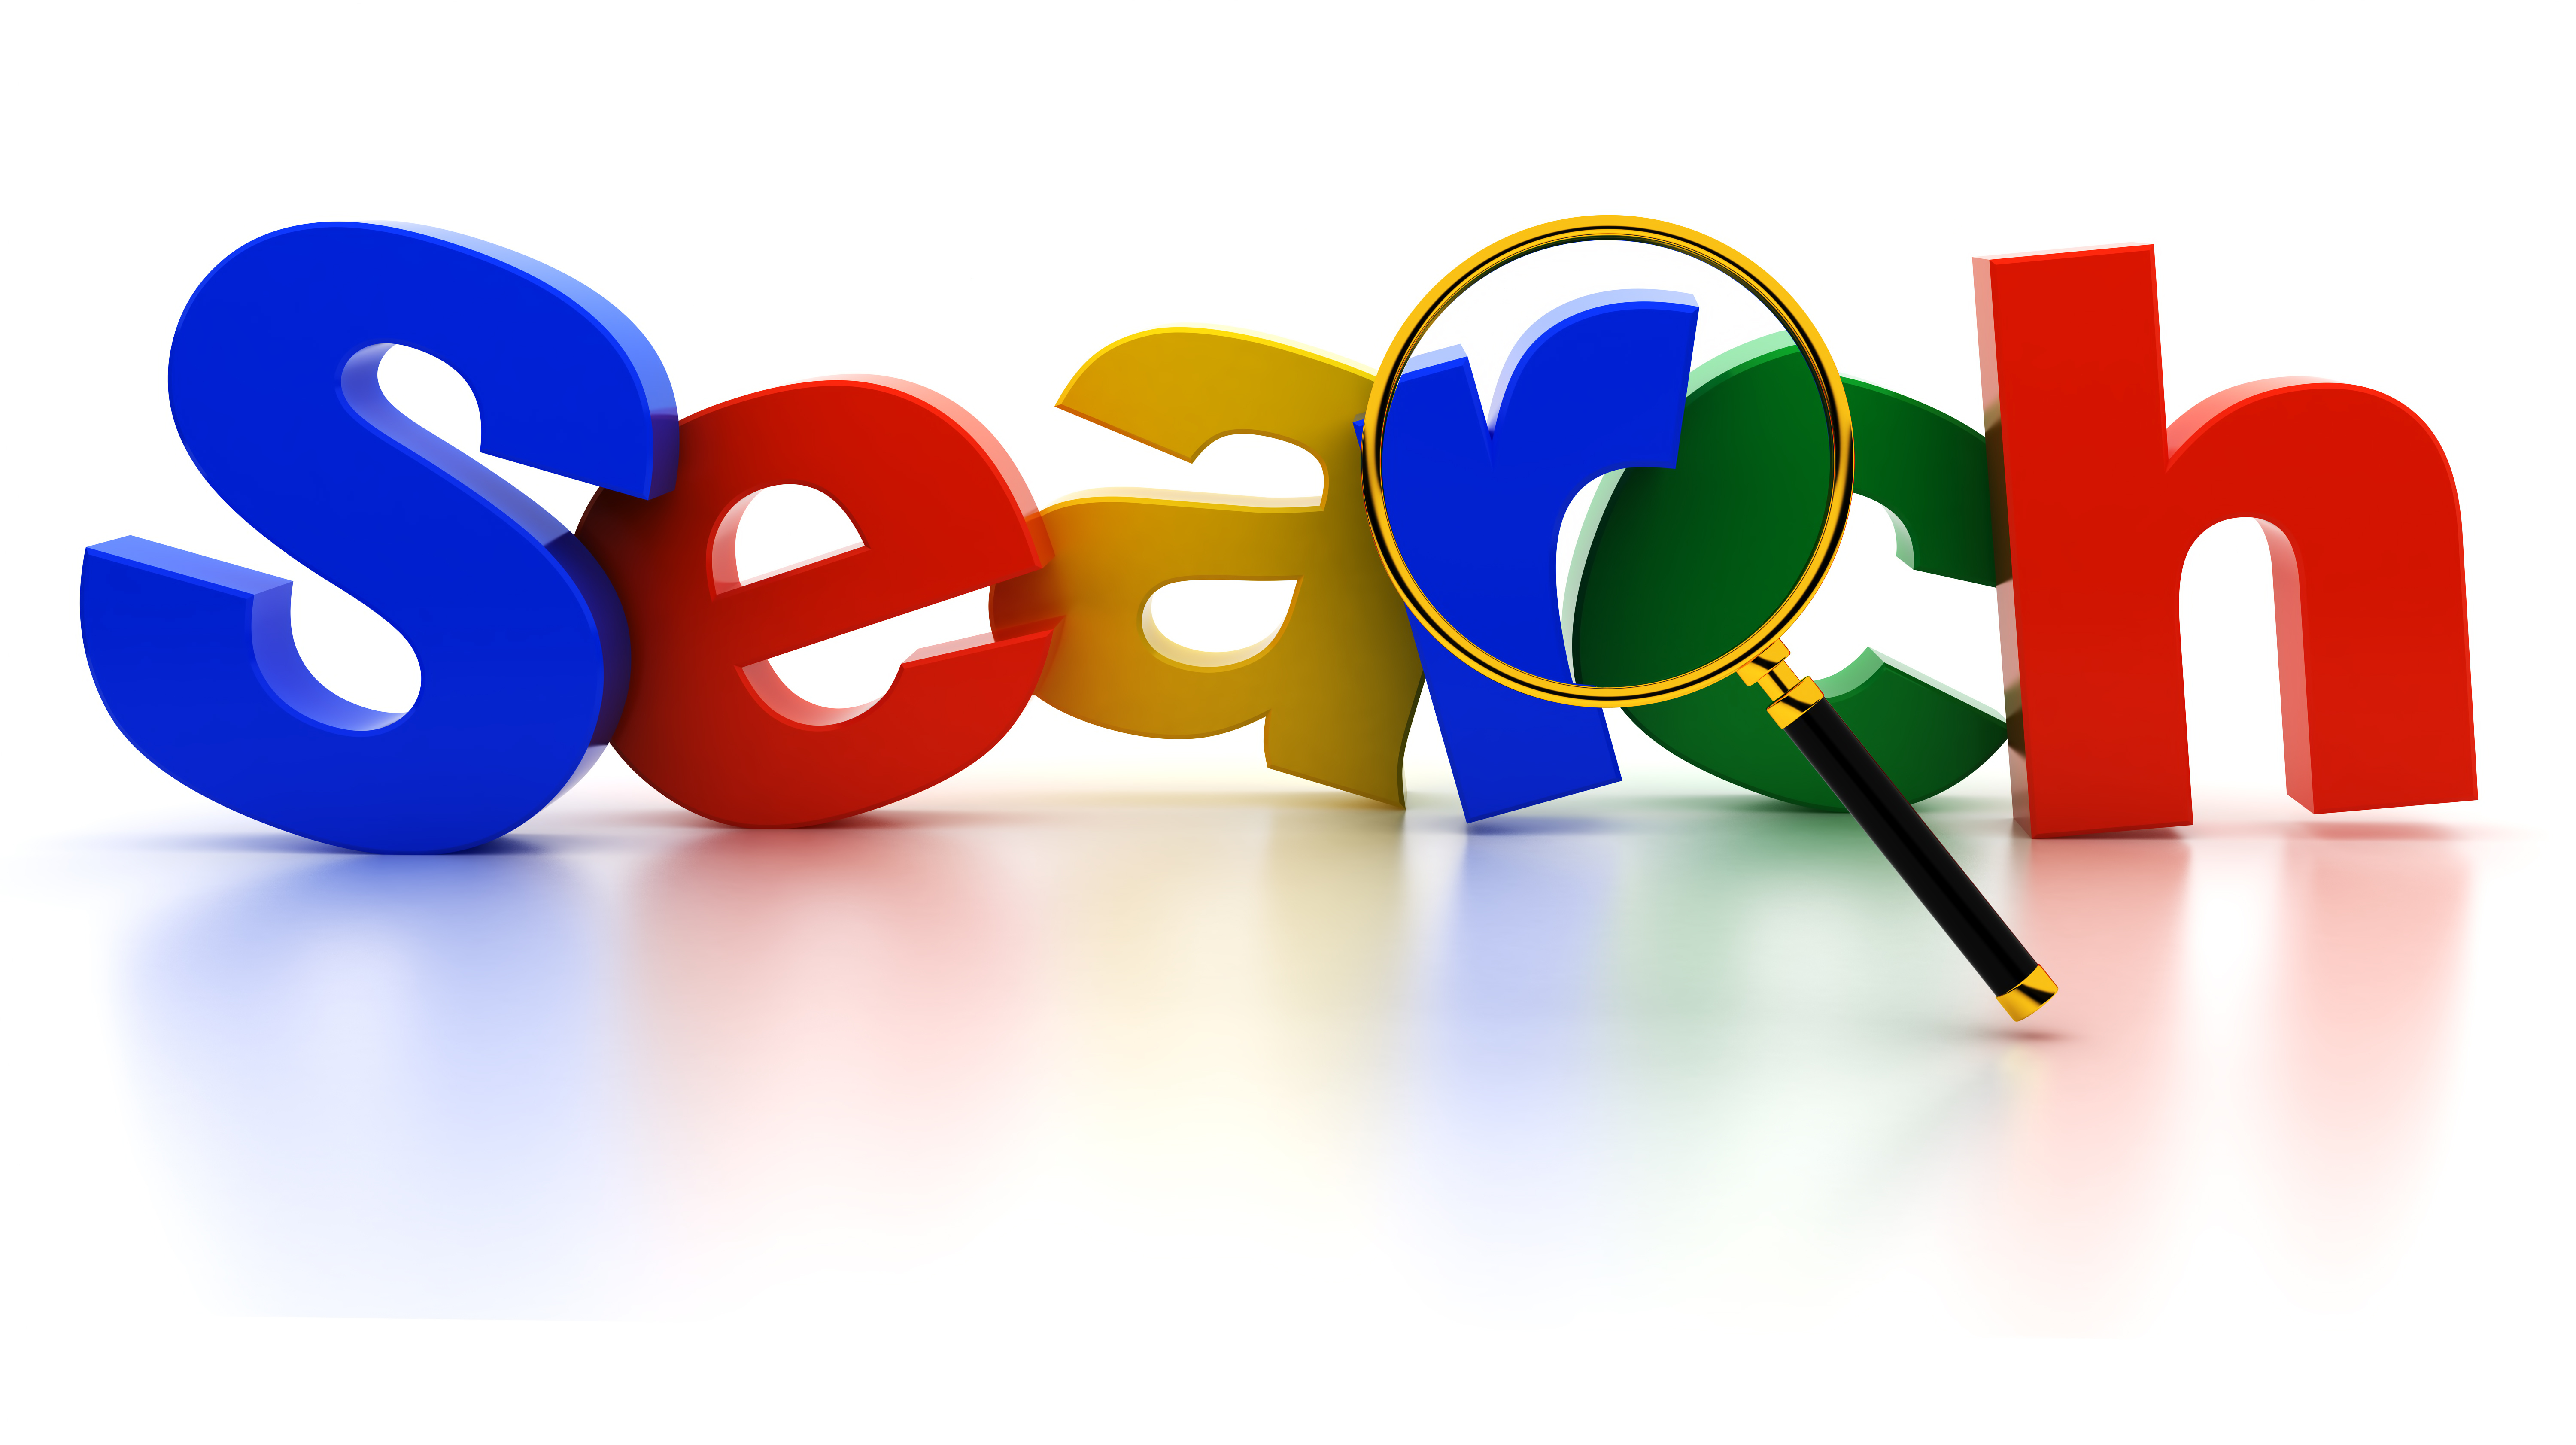 Search by image vector royalty free search images vector royalty free